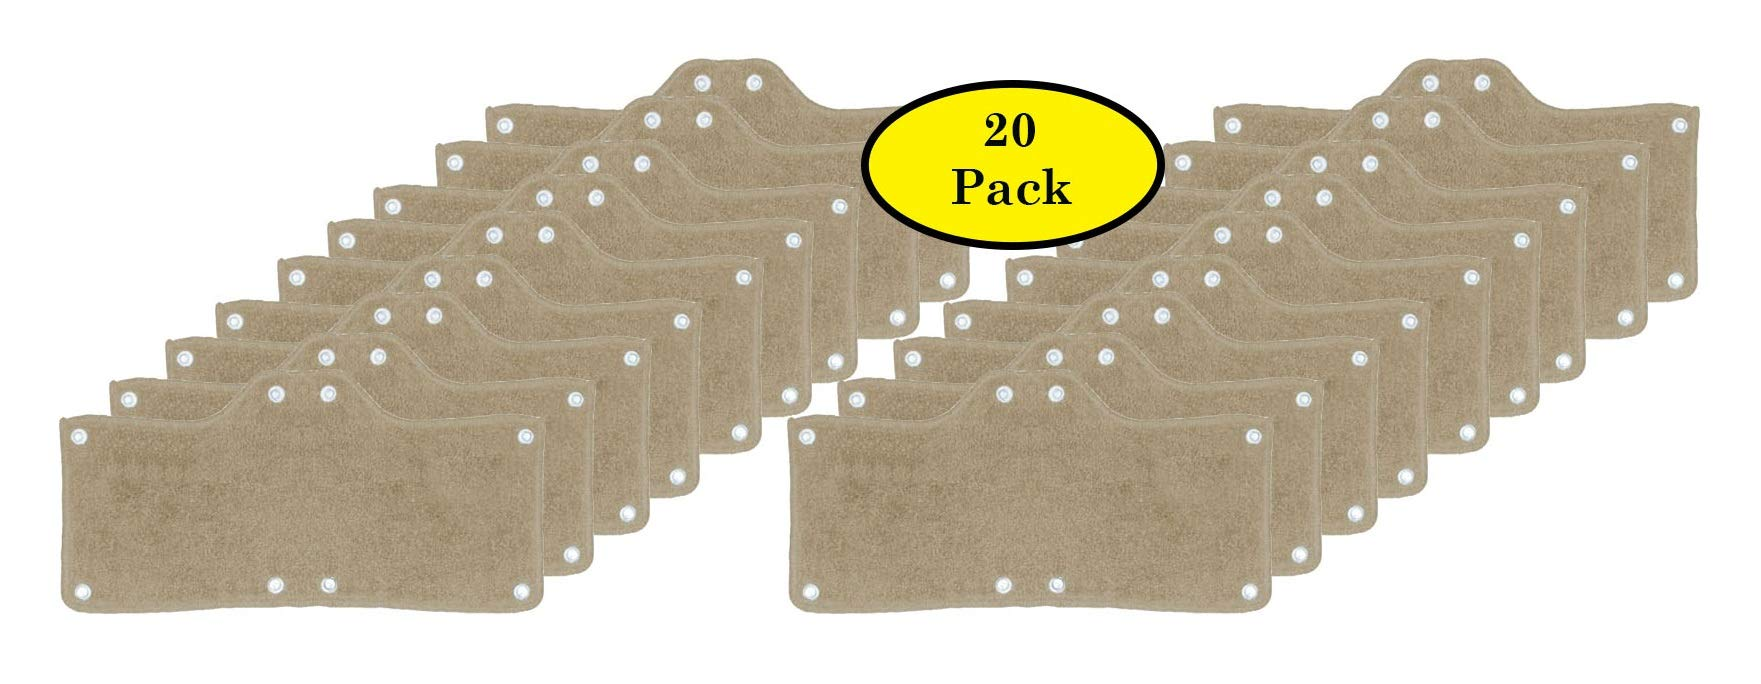 20 Pack Best Hard Hat Sweatband Beige Washable Snap On Sweat Band Liner Safety Accessories by Tuff America